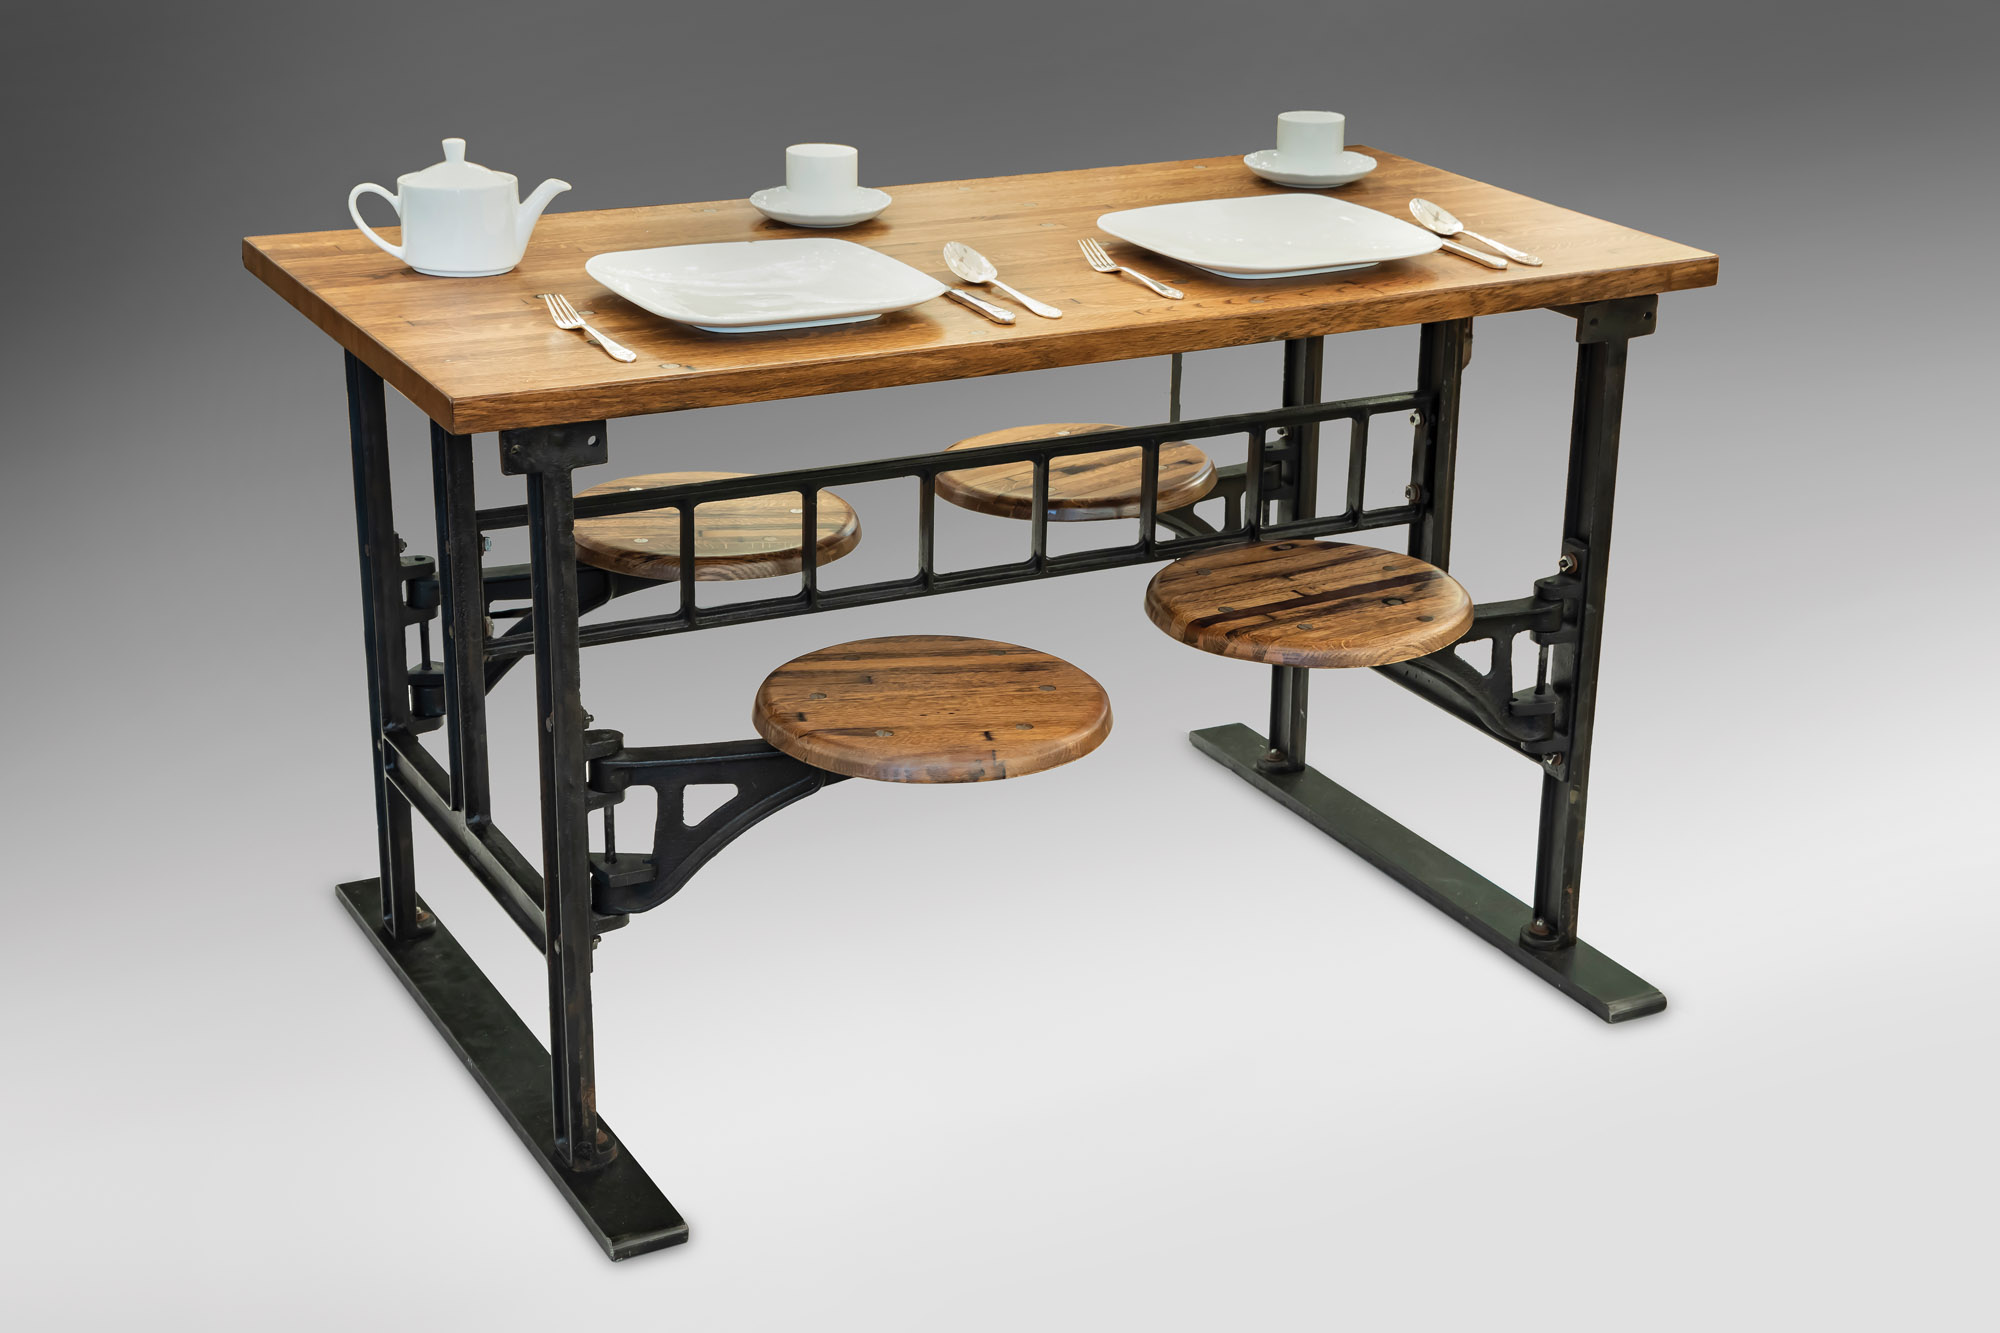 Sani lunchroom table